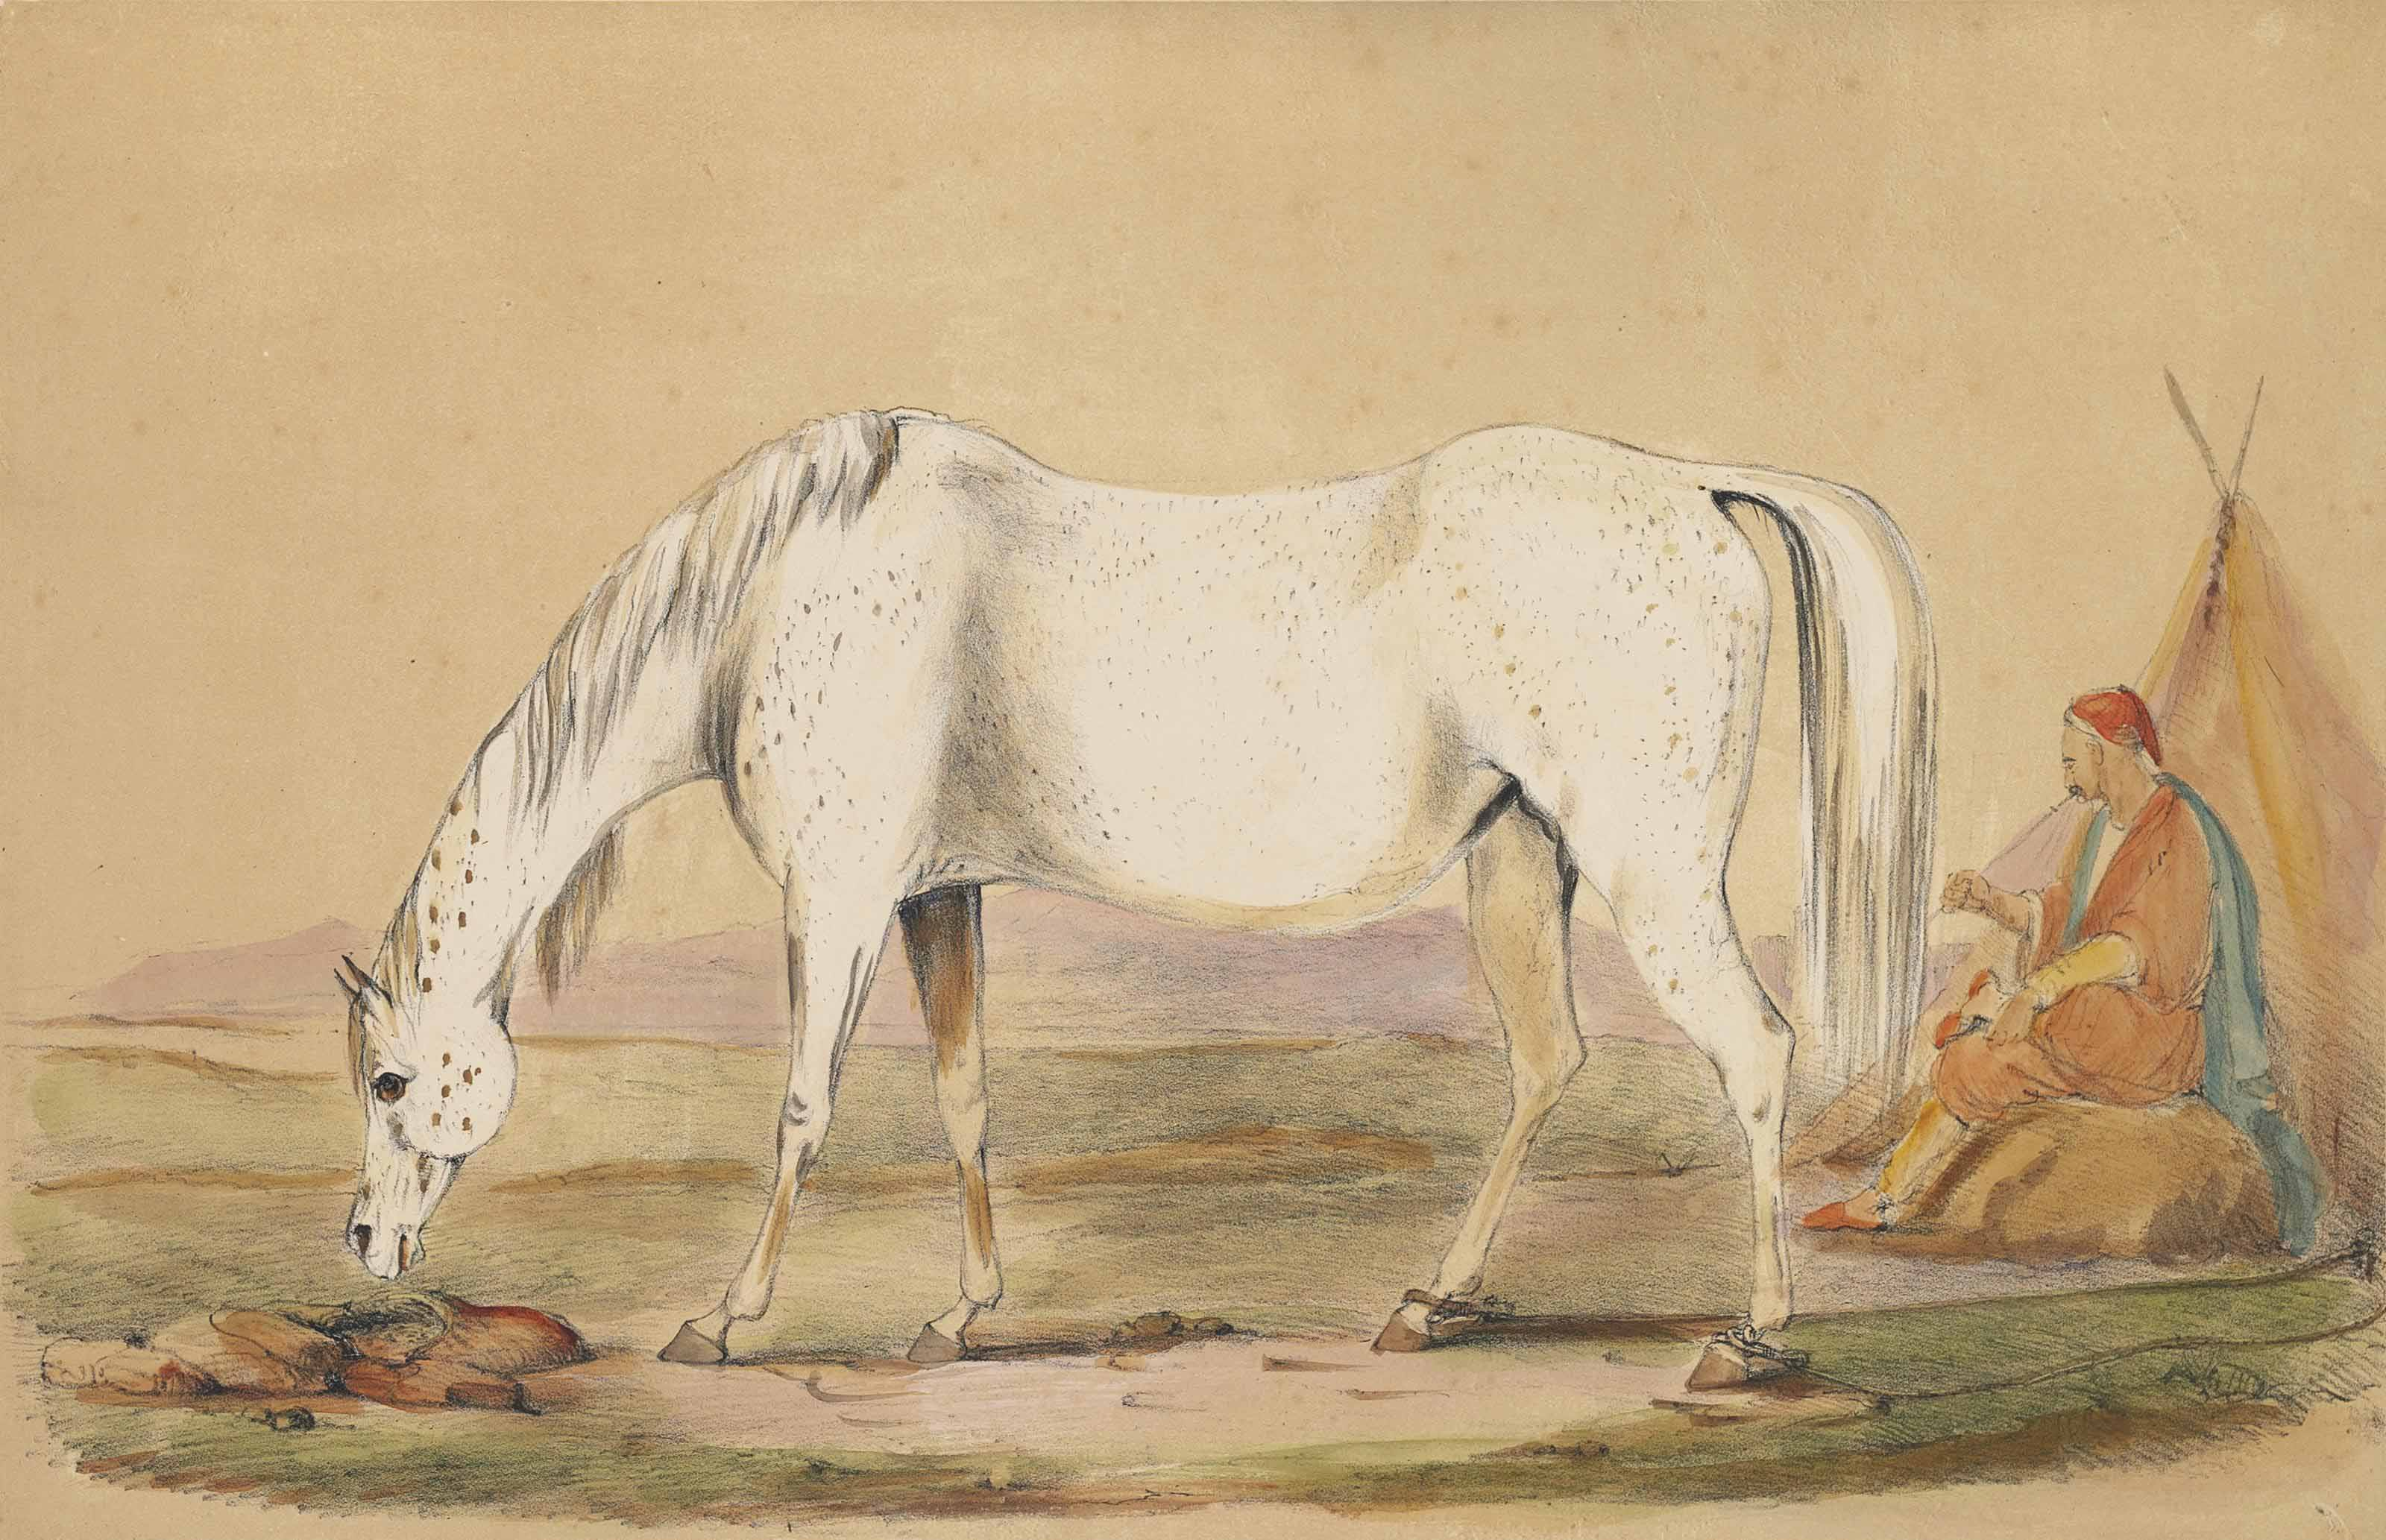 W. C. Portraits of Brood Mares Belonging to the Royal Stud at Hampton Court.  London: William Nicol, 1837. 2° (425 x 360mm). 24 chromolithographic plates by A. Ducotés. (Occasional light marginal soiling and spotting.) Contemporary half red morocco gilt, top edge gilt (extremities rubbed).